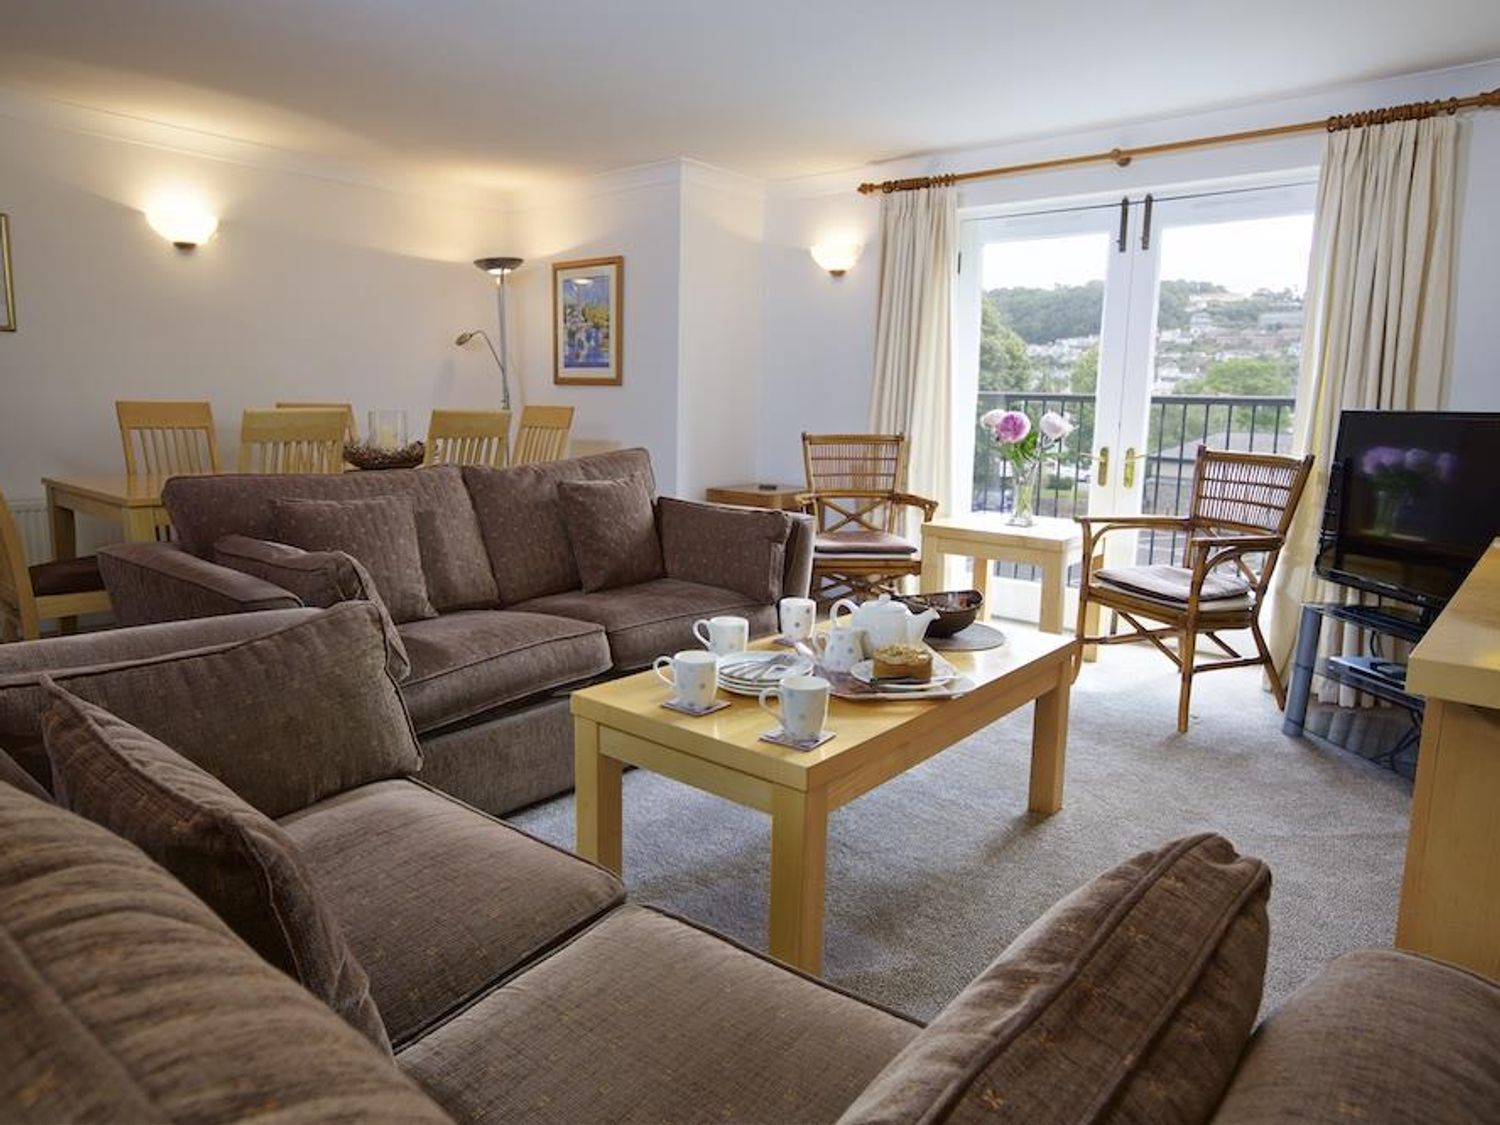 10 Dartmouth House - Devon - 994424 - photo 1